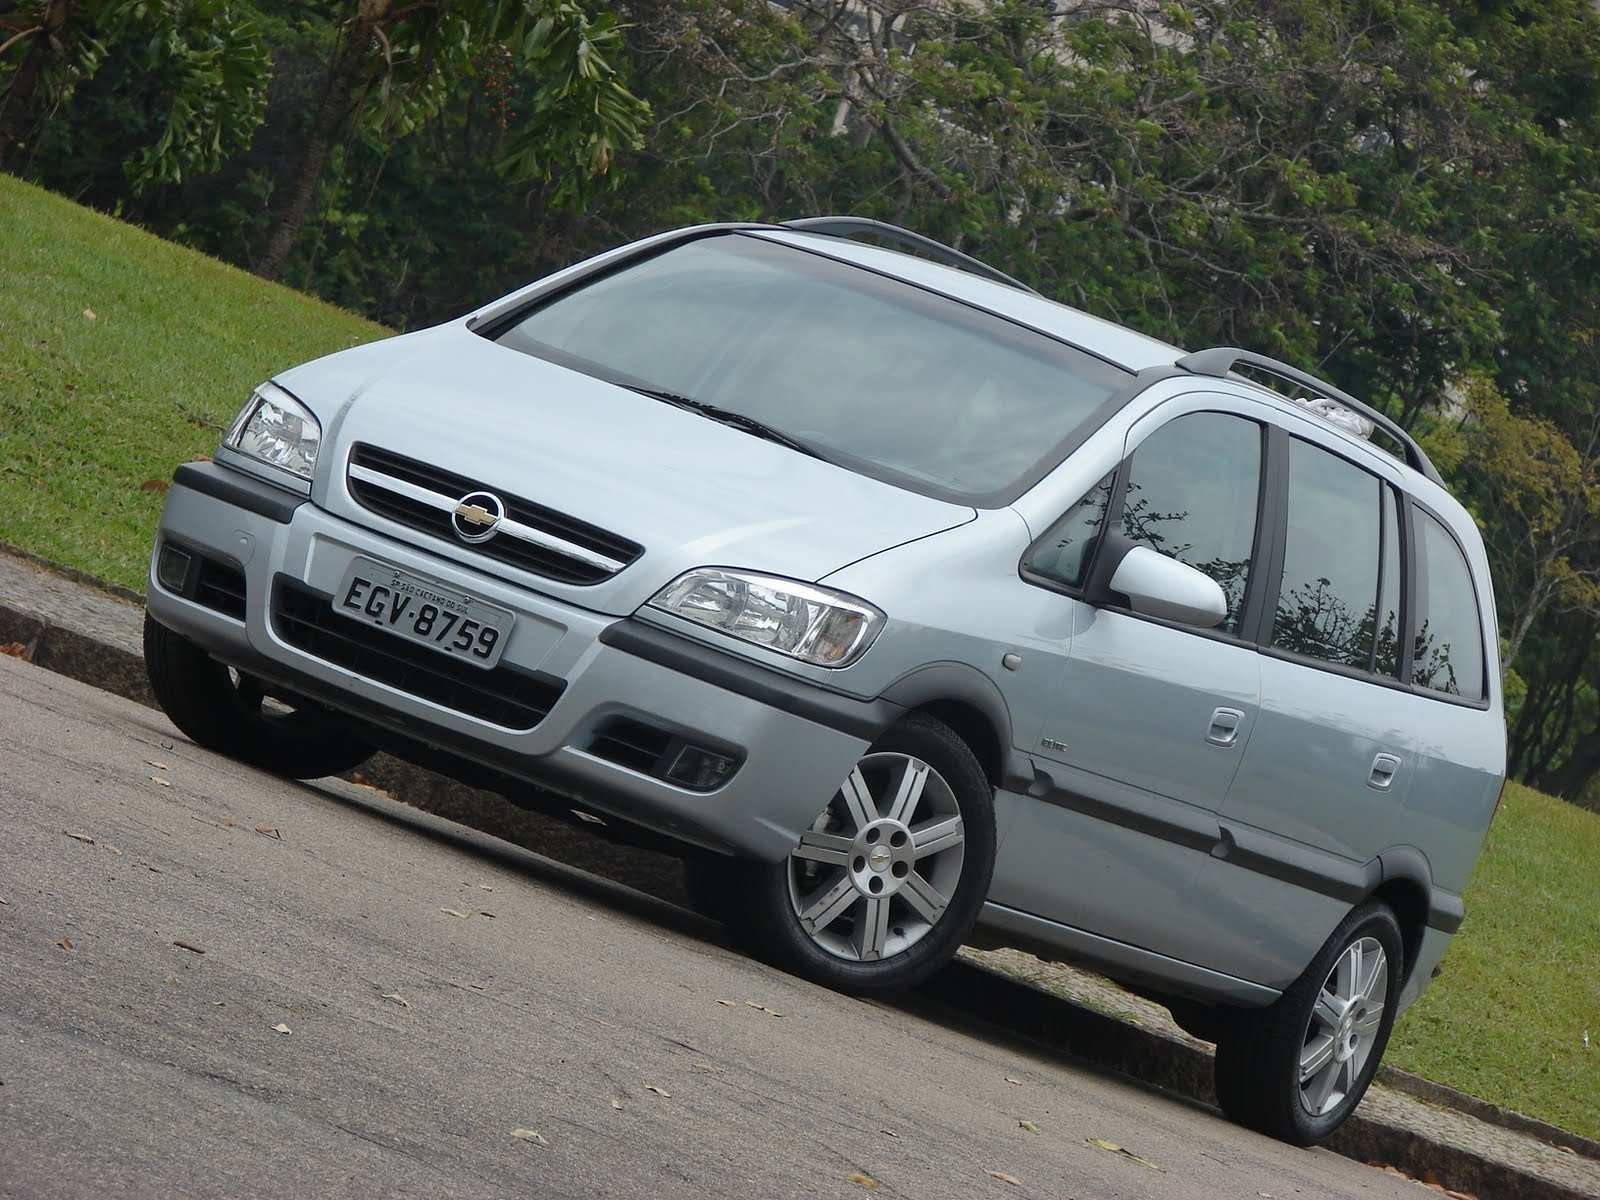 Chevrolet Zafira 2001 photo - 5